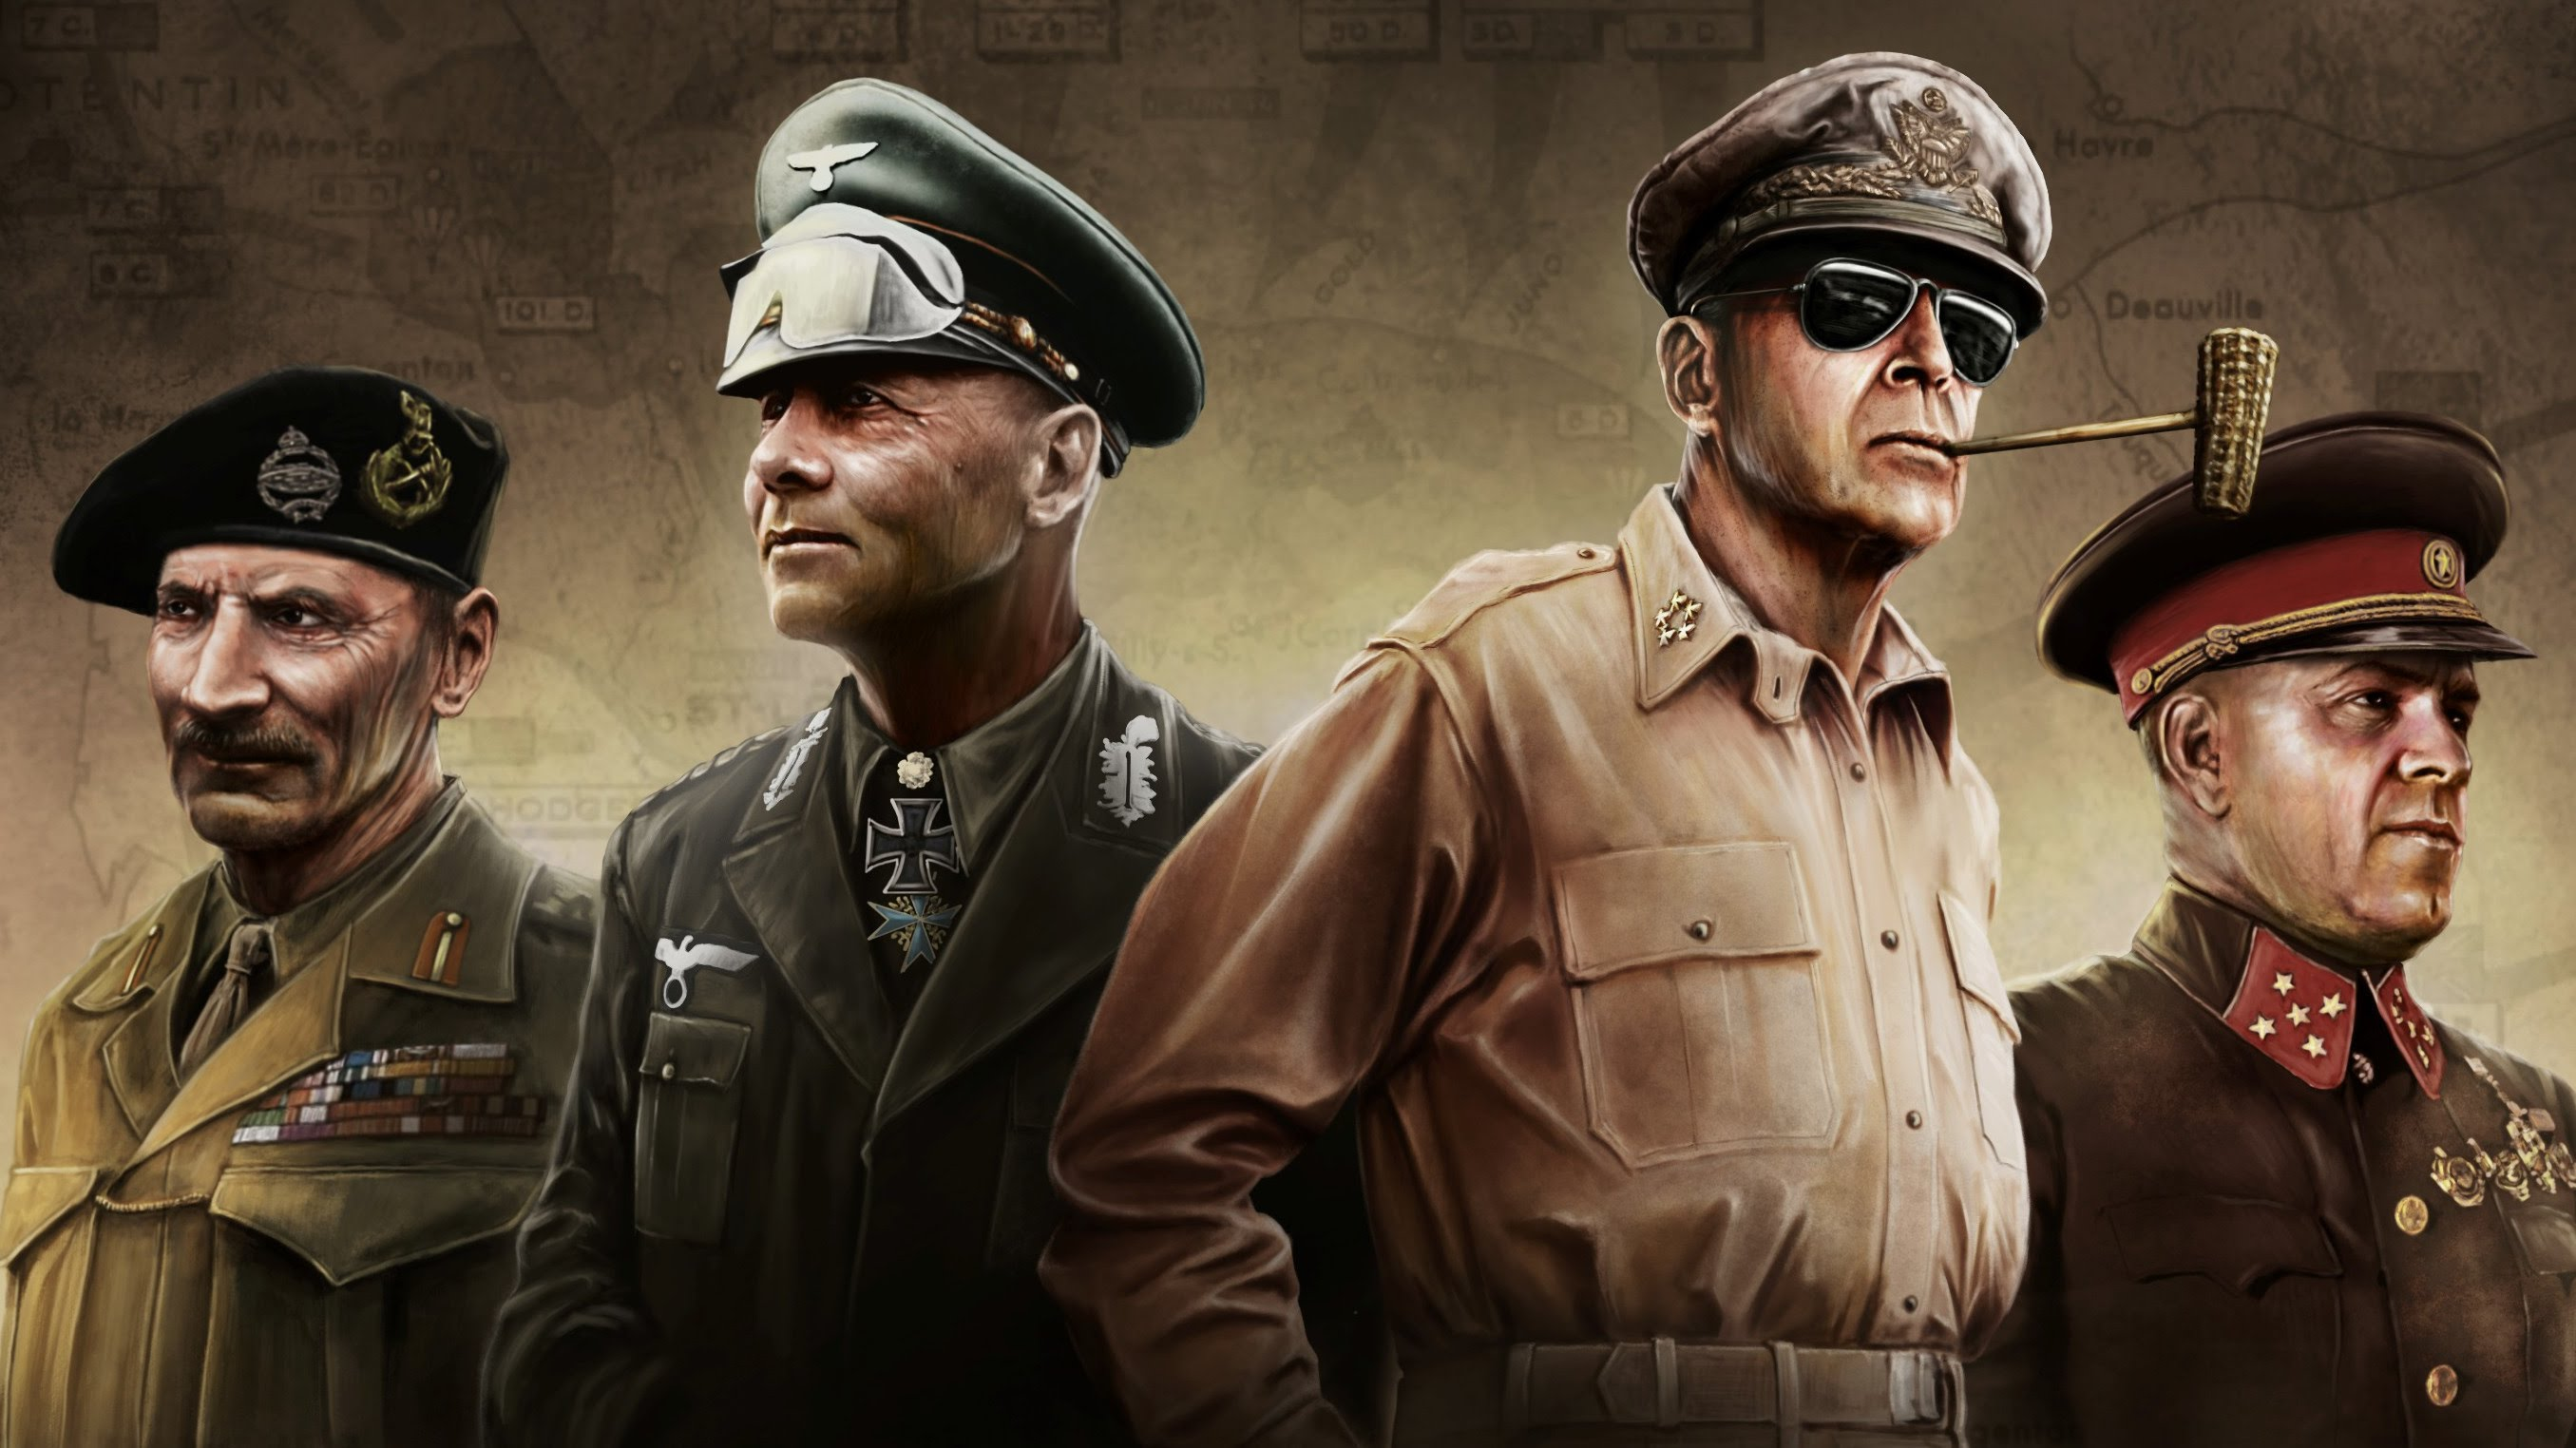 Hearts Of Iron 4 Hd Wallpapers 7wallpapers Net